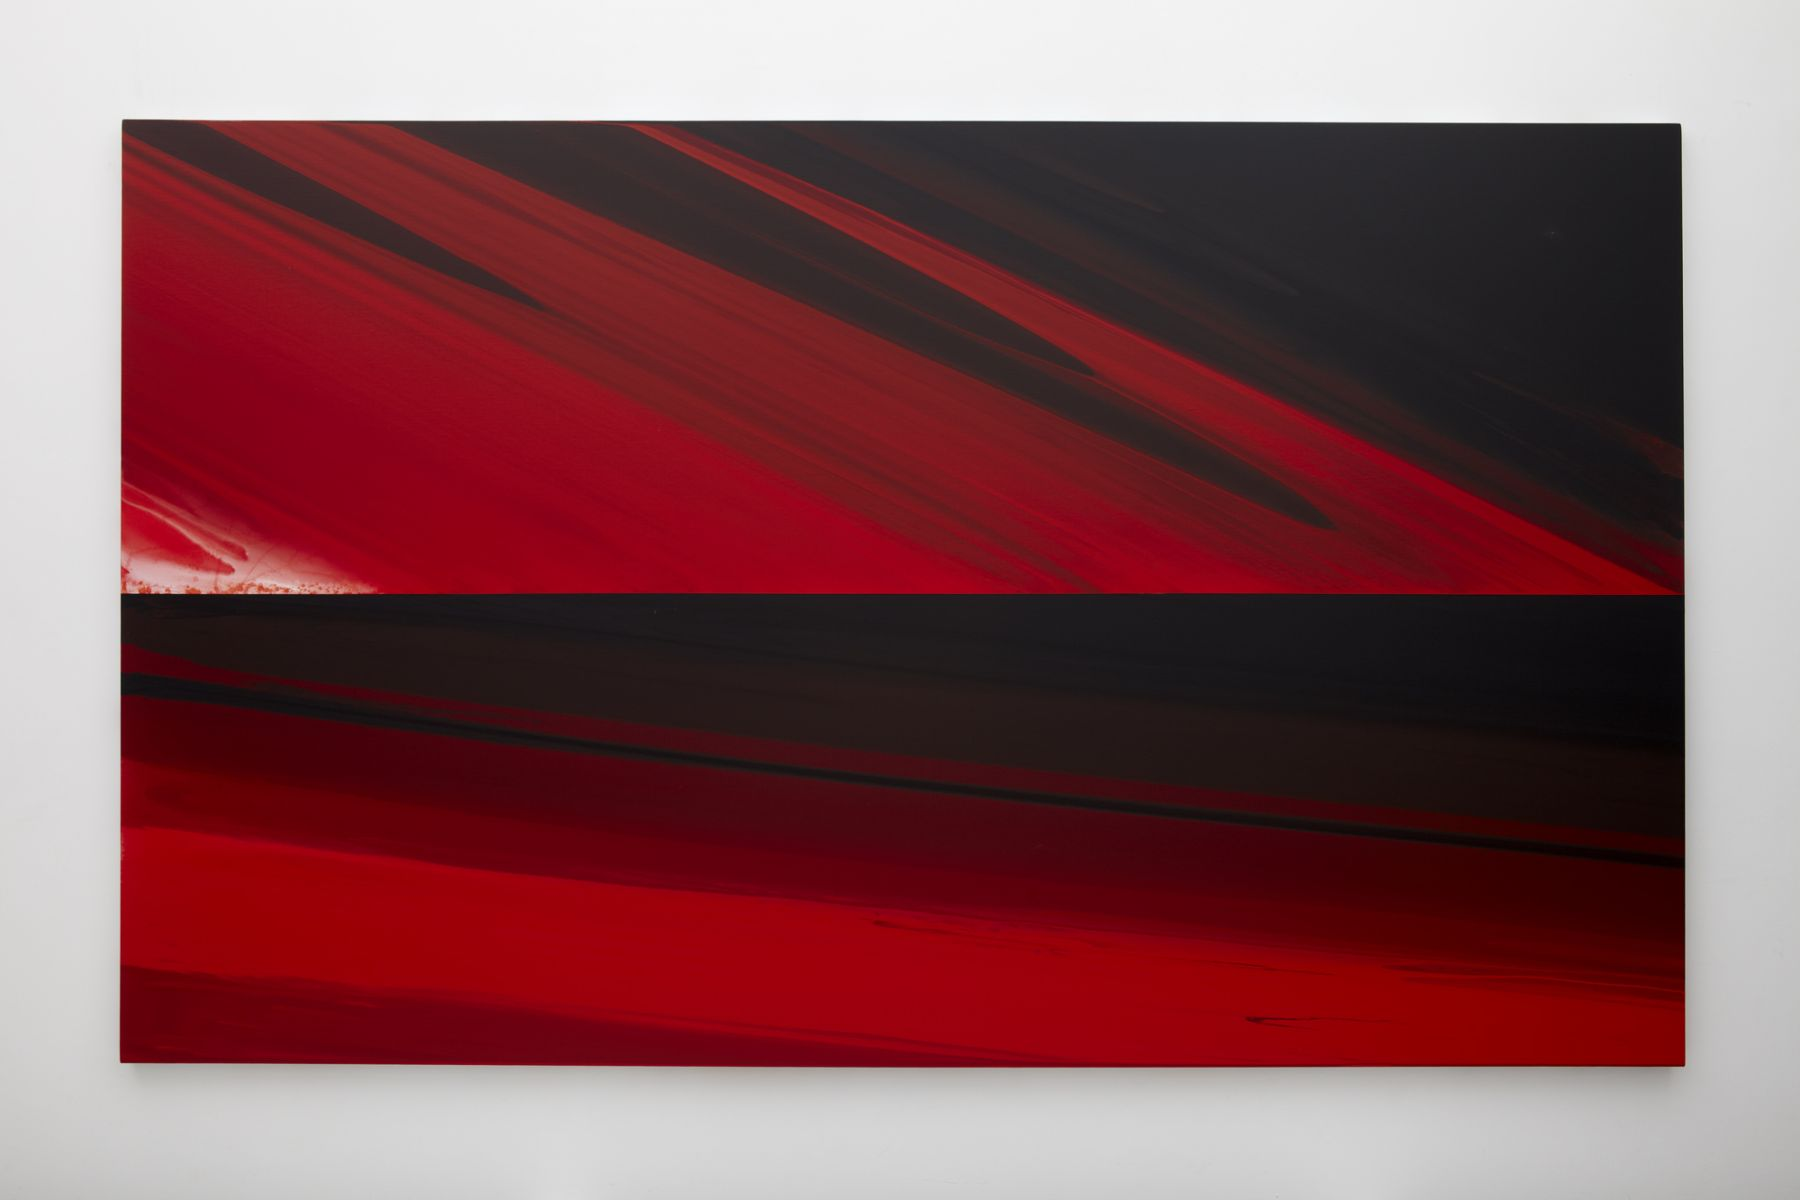 red gestural abstract painting by barnaby furnas available to buy